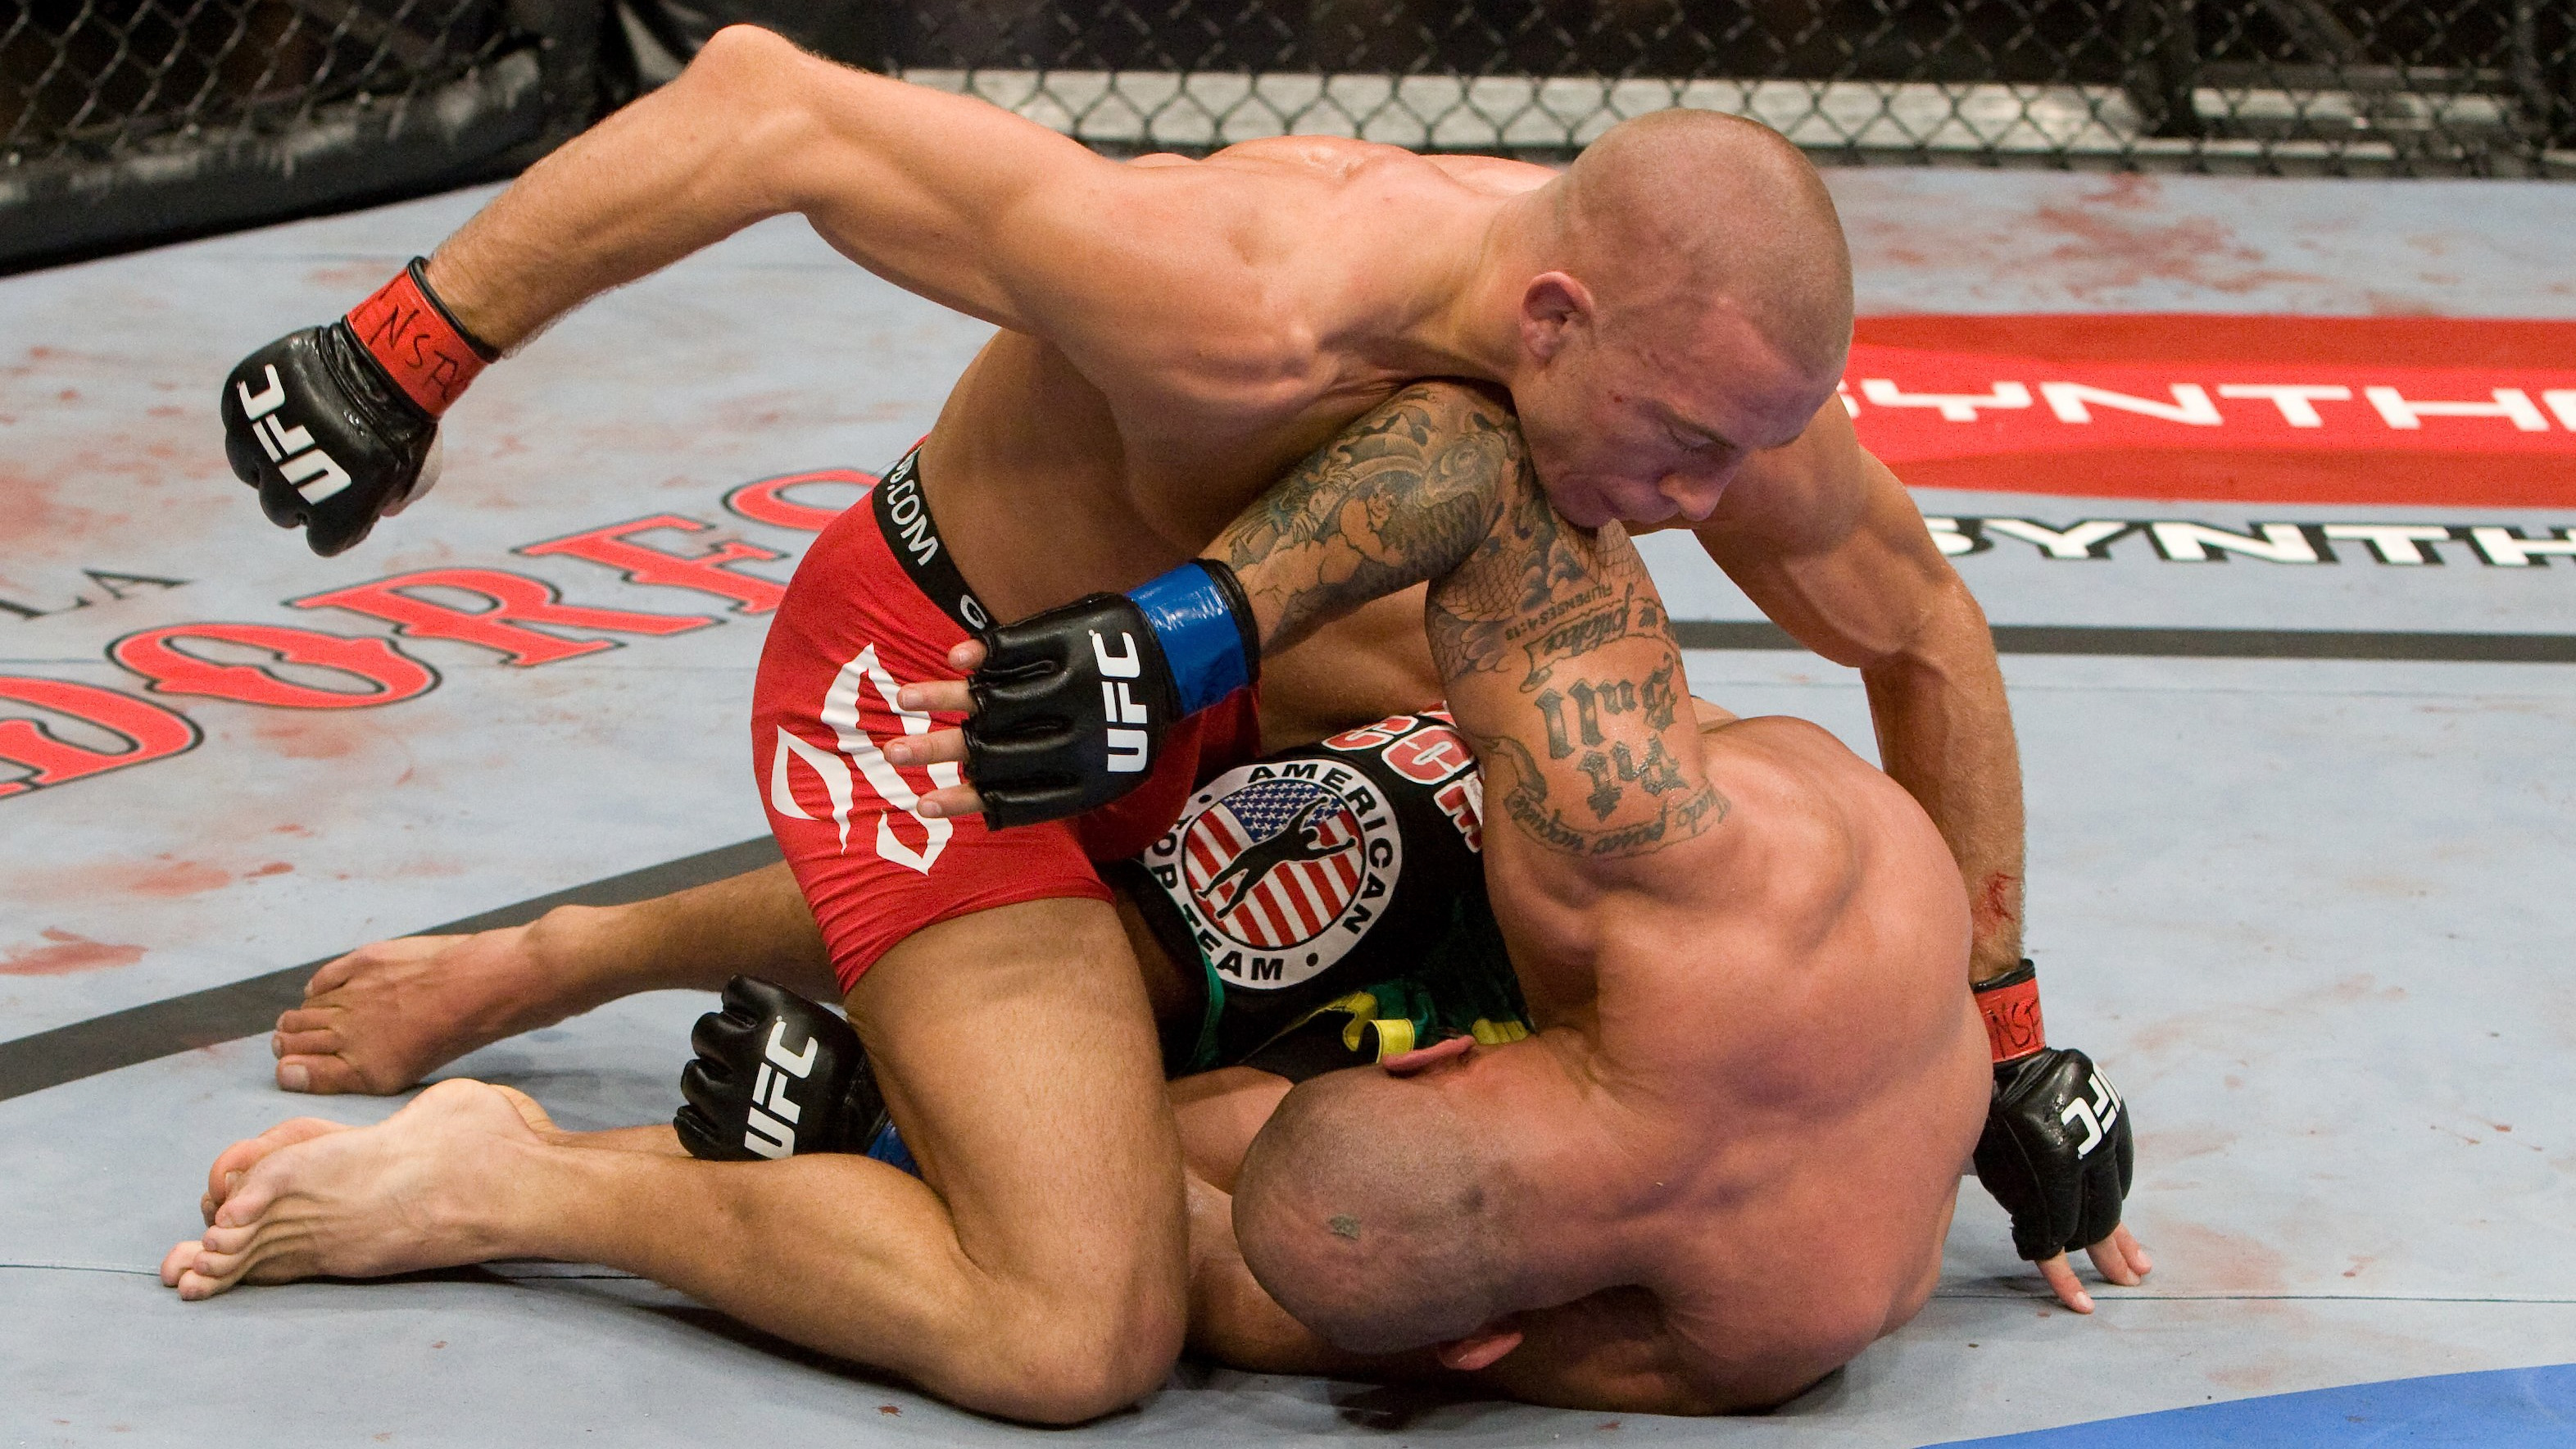 GSP in action during his UFC 100 victory vs Thiago Alves (Photo by Josh Hedges/Zuffa LLC via Getty Images)